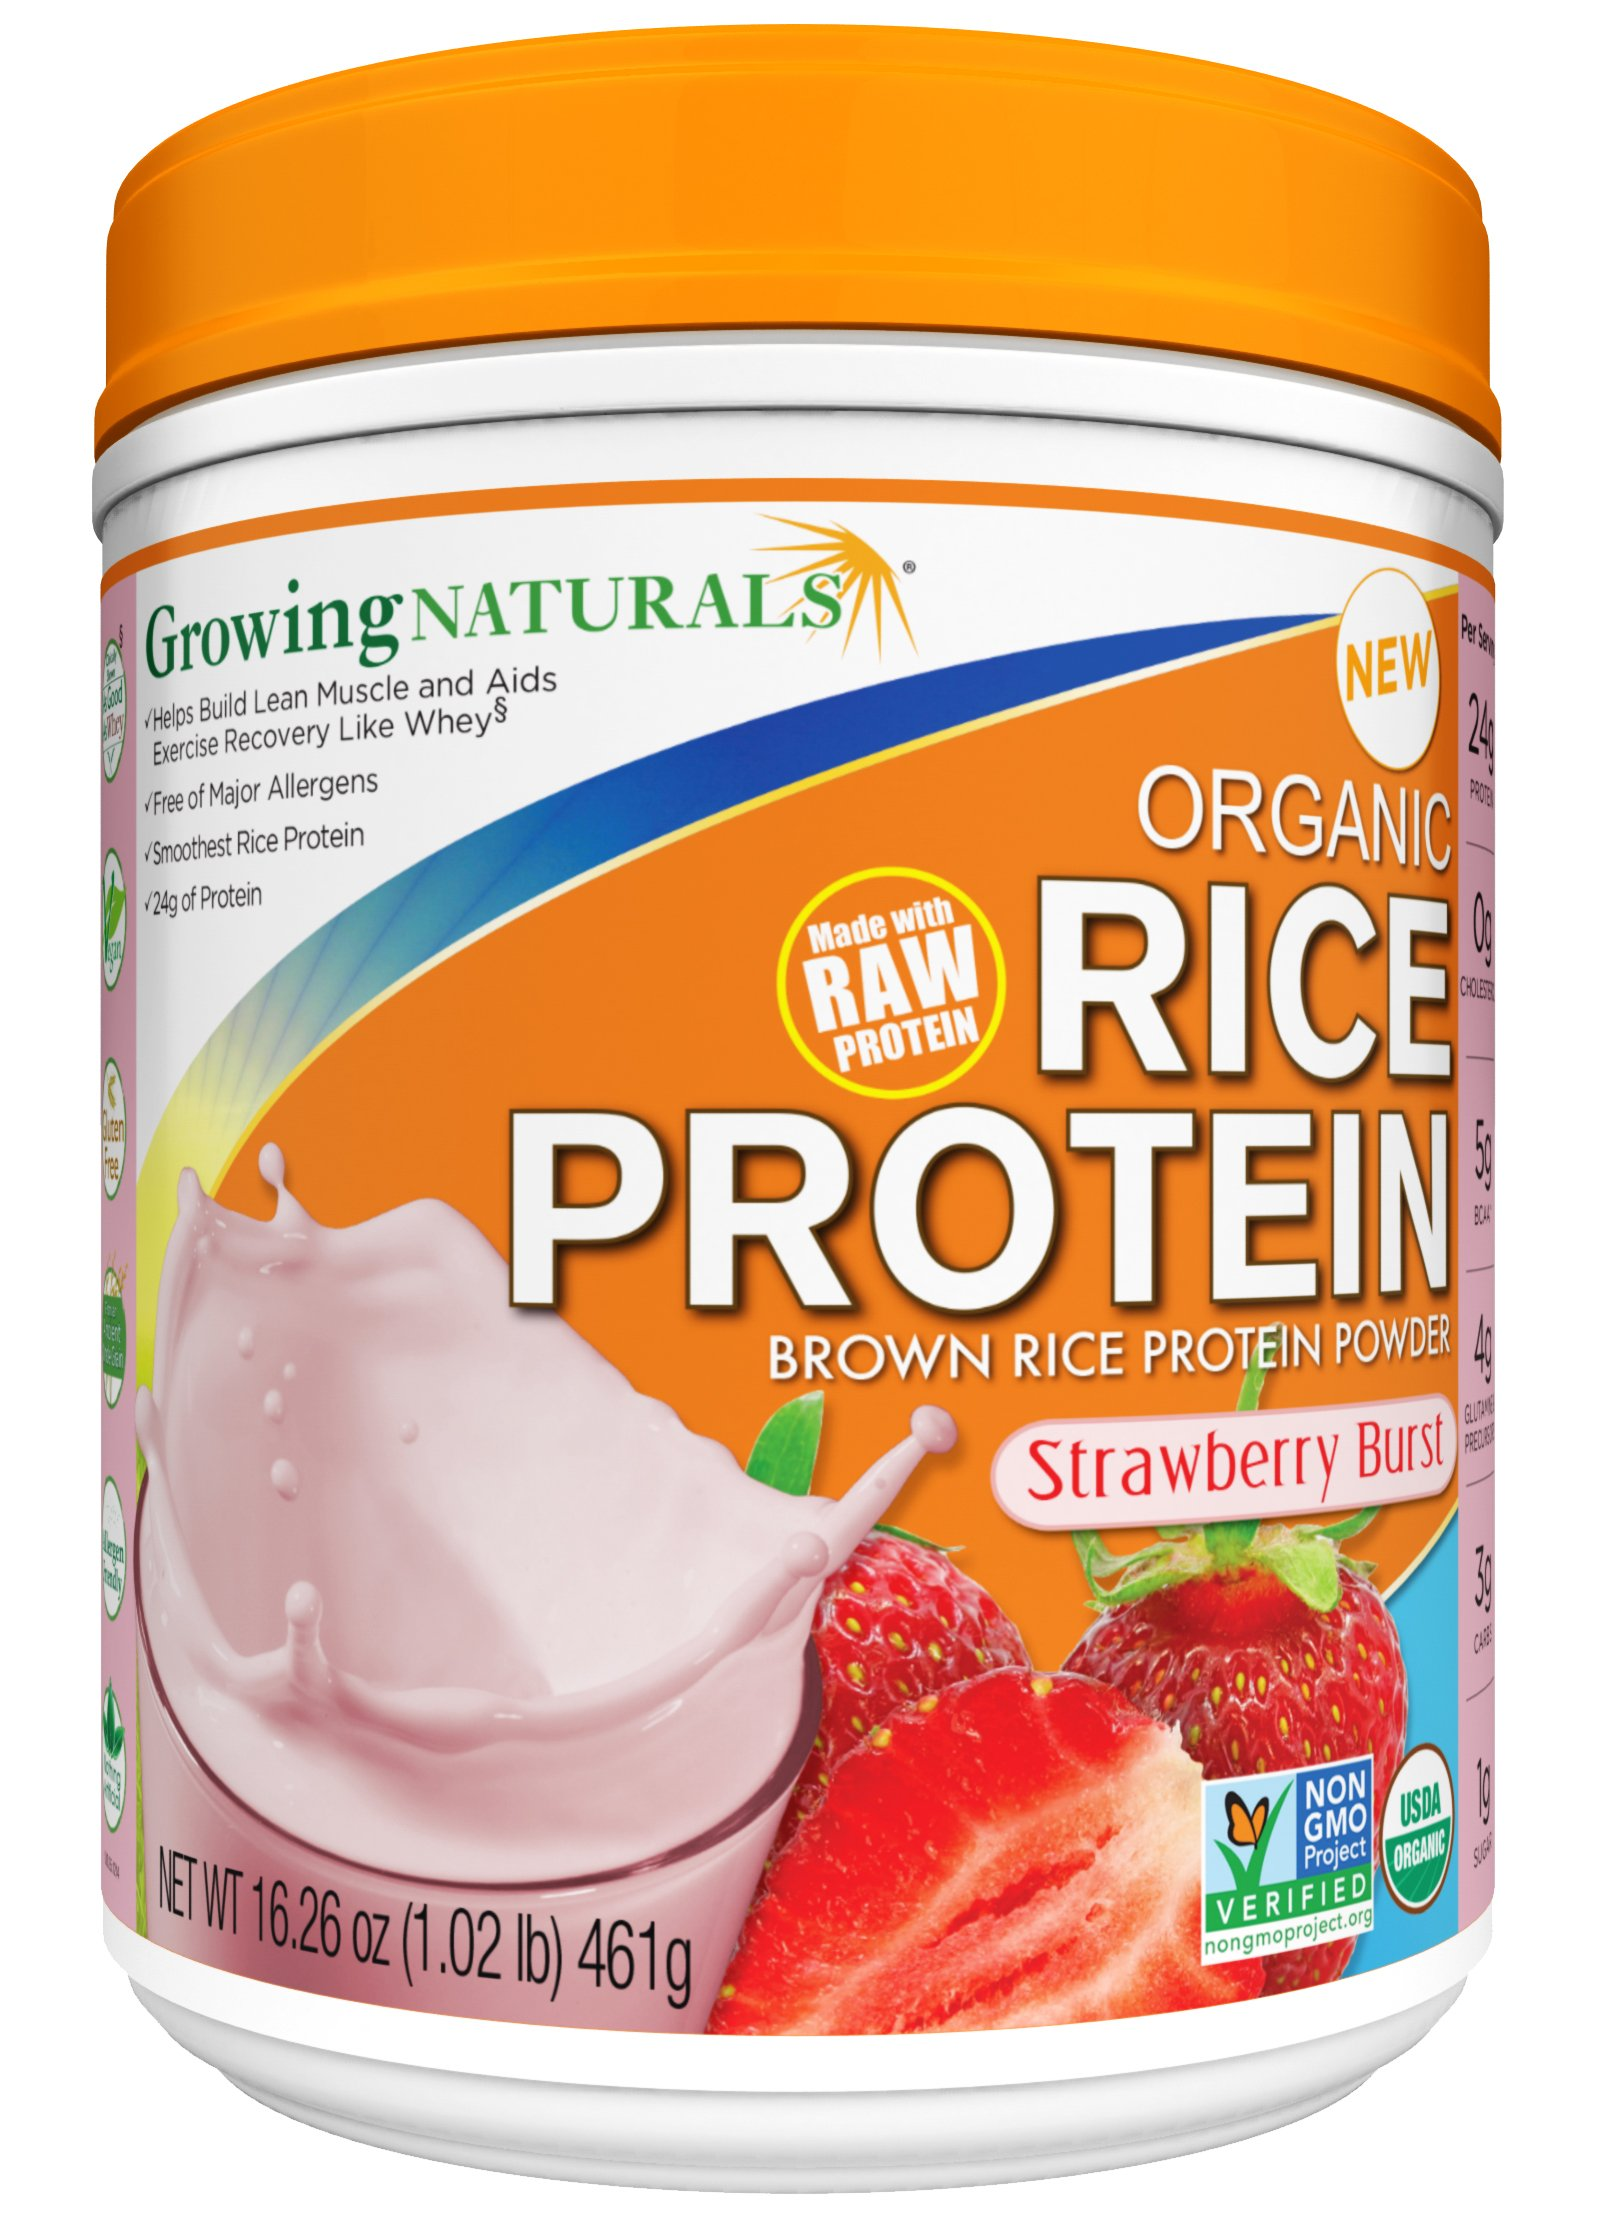 Growing Naturals Organic Rice Protein Powder, Strawberry Burst, 16.26 Ounce